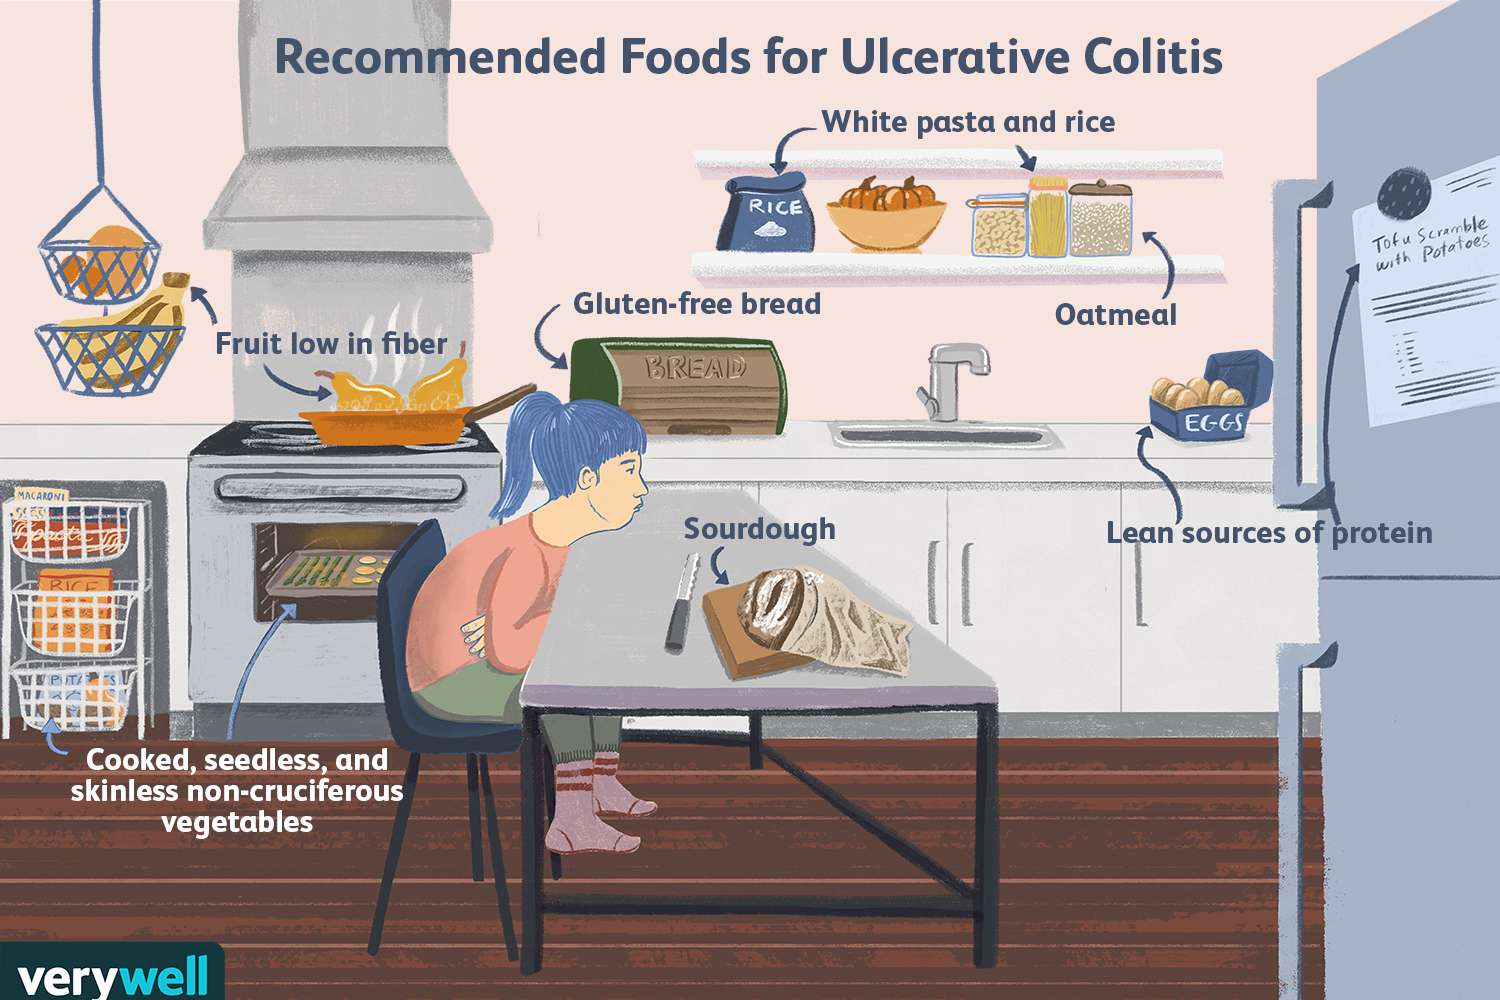 Recommended Food for Ulcerative Colitis